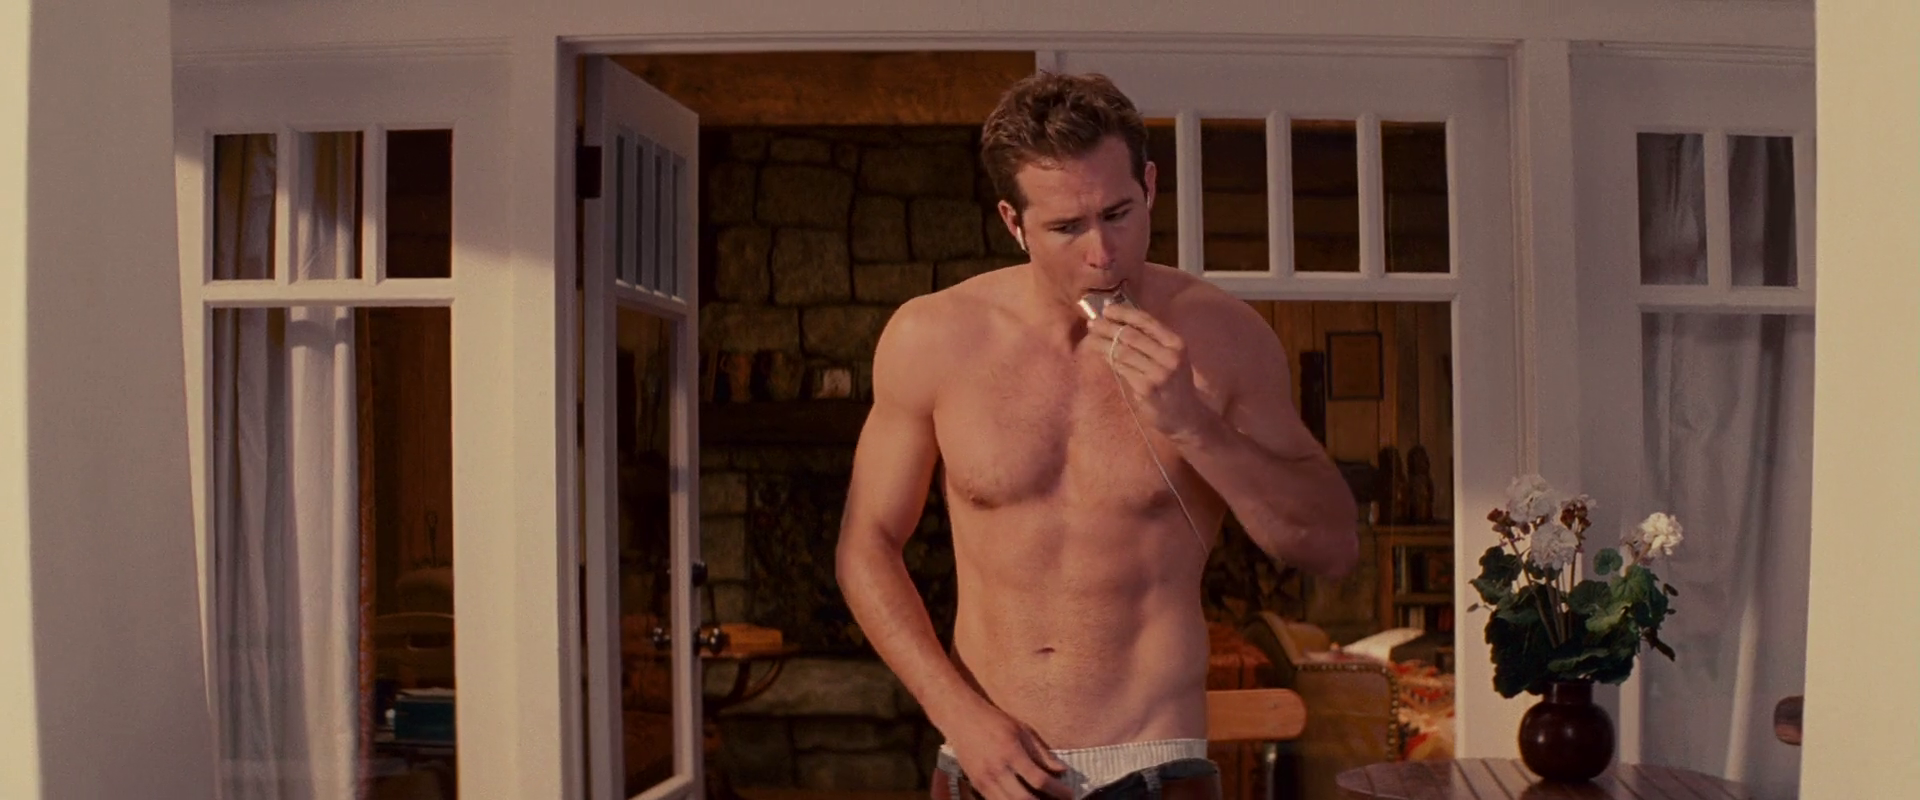 Ryan Reynolds as Andrew Paxton shirtless/naked in The Proposal